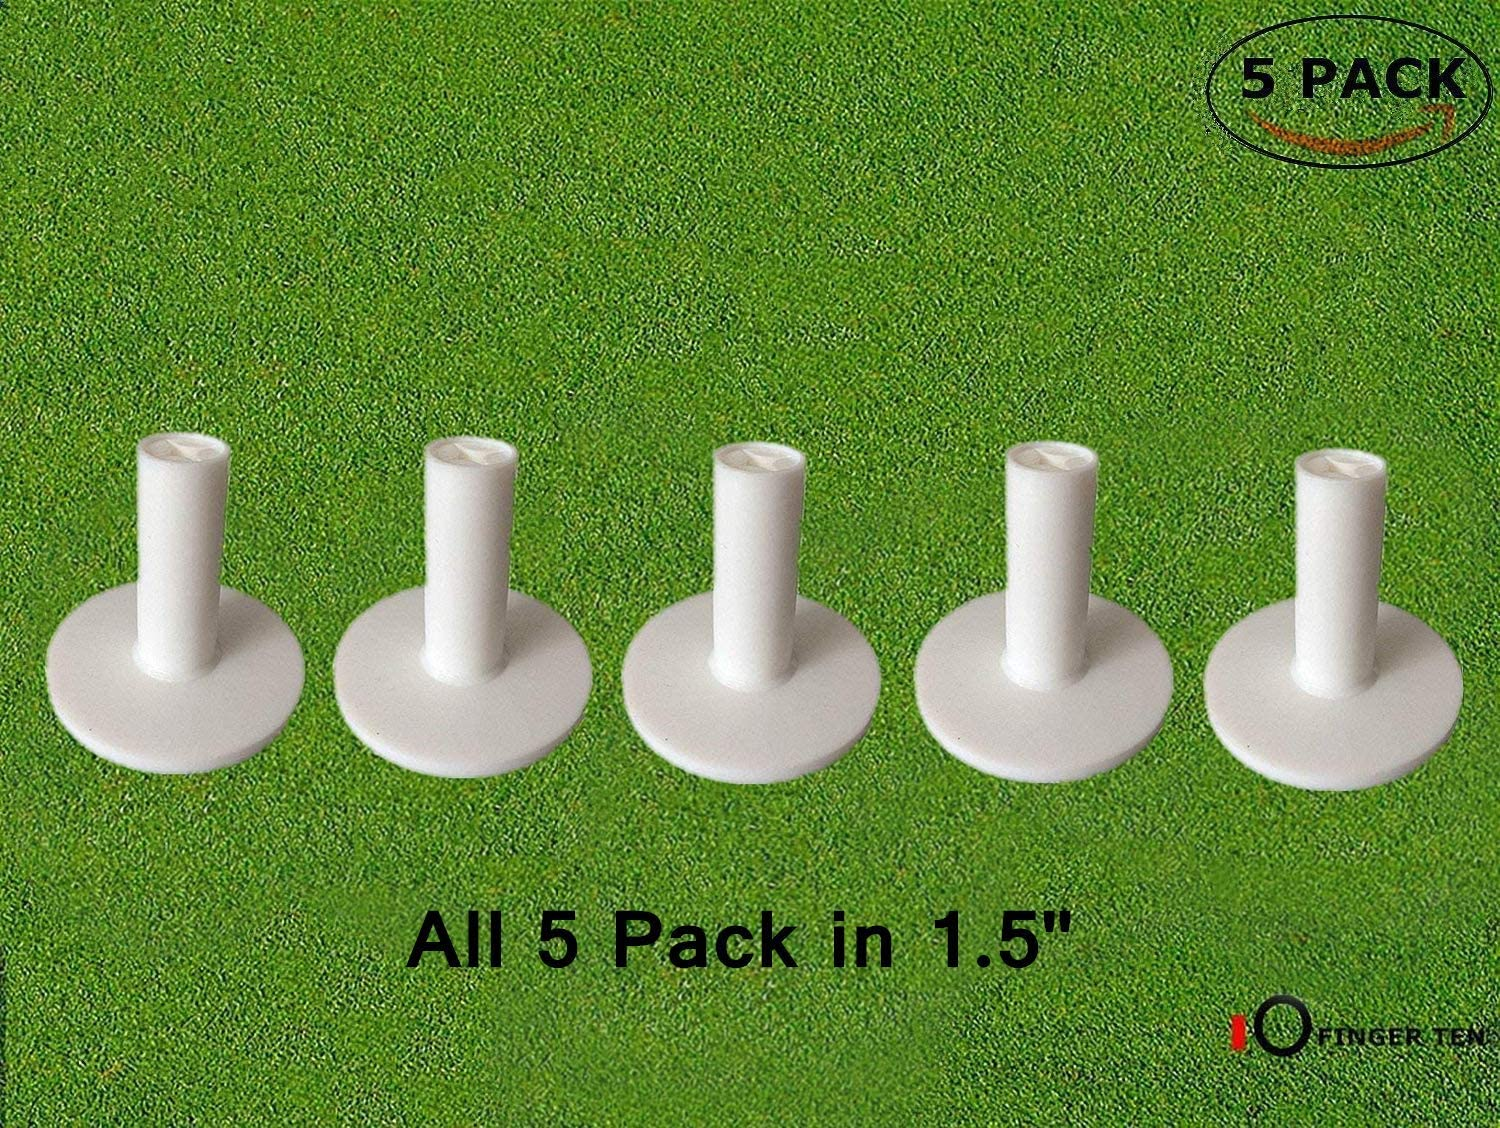 FINGER TEN Golf Rubber Tee Driving Range Value 5 Pack for Indoor Outdoor Practice Mat, Tee Adaptor Size 1.5'' 2.0''White Black Tee Holder Set for Hitting Mats